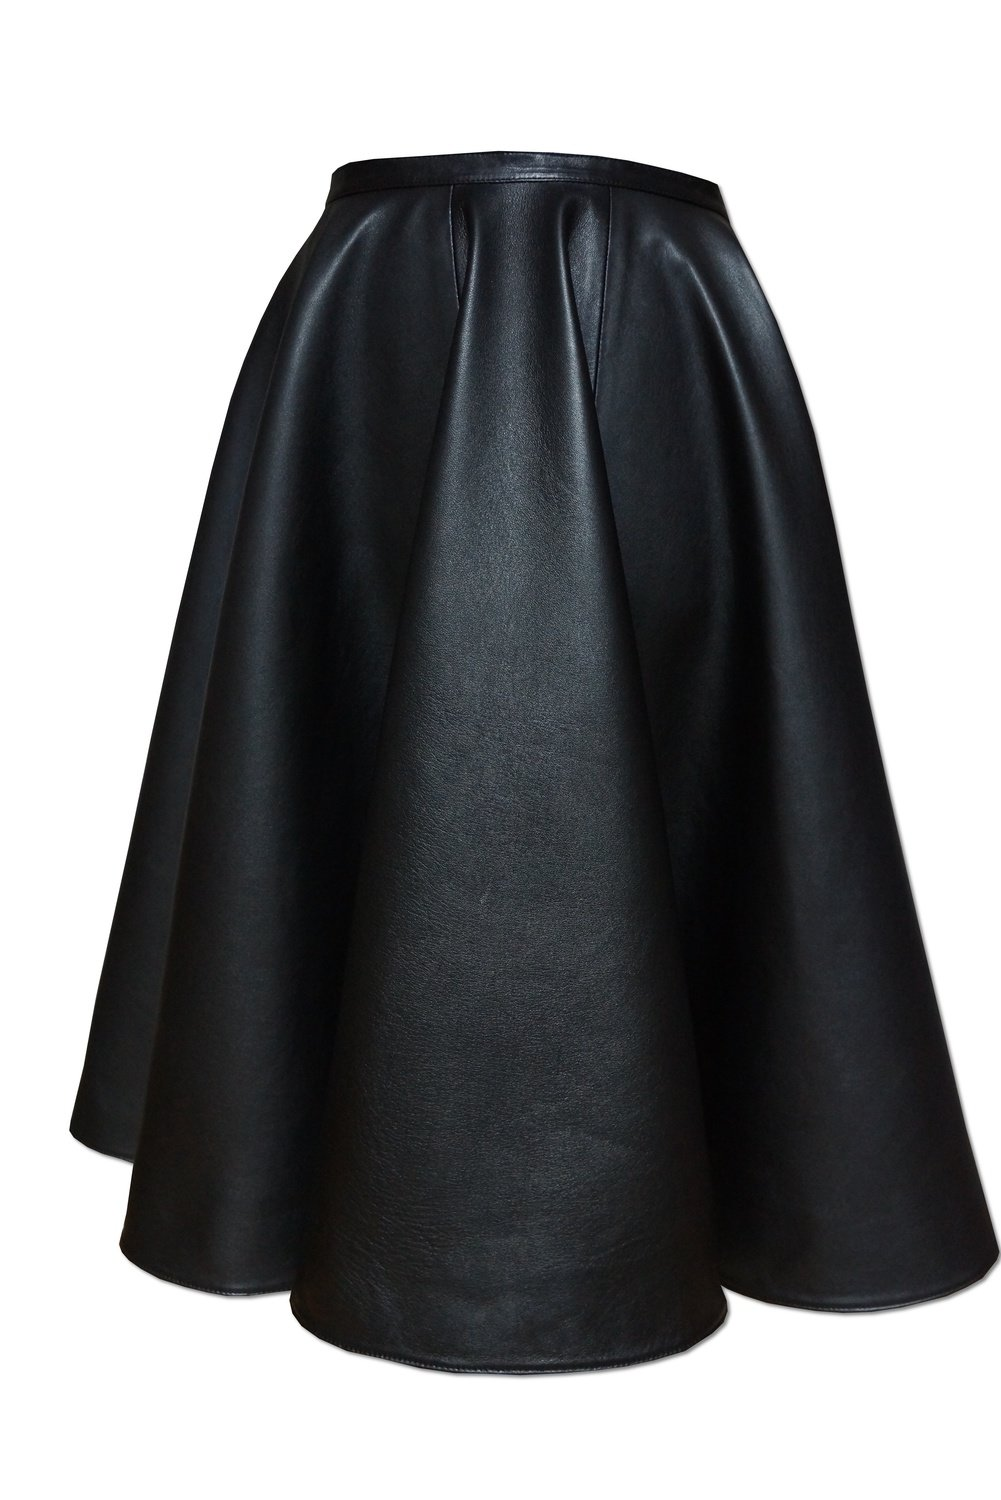 Leather Skirt 6 wedges